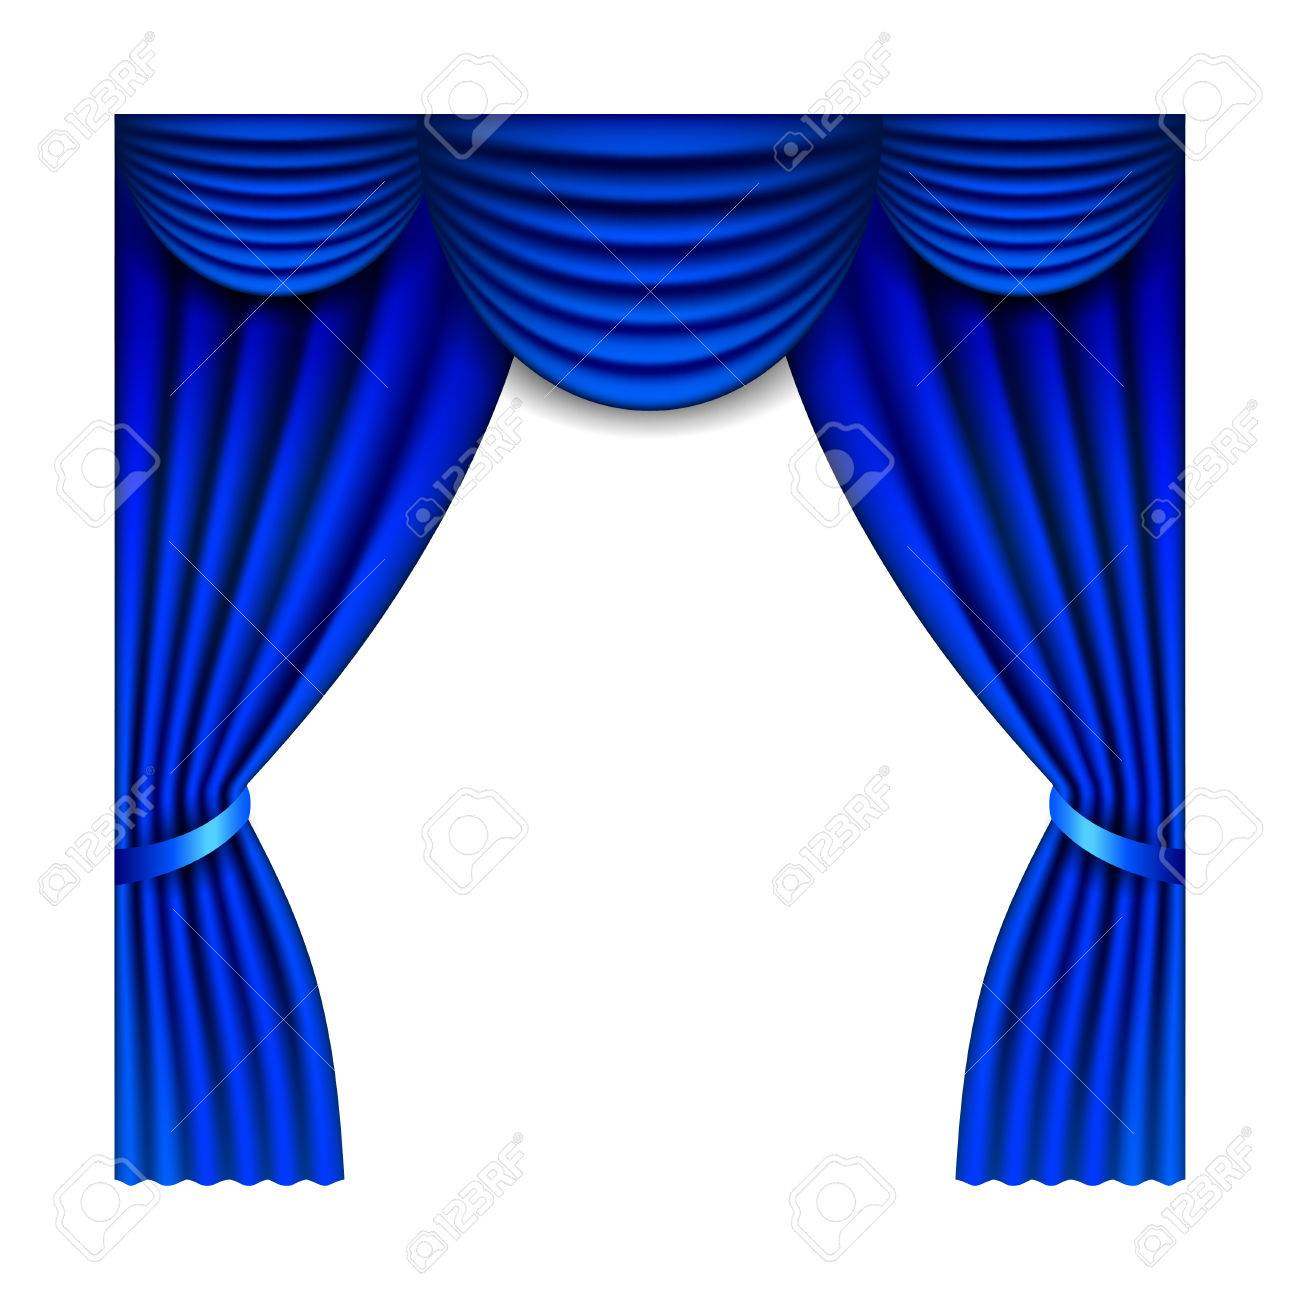 Blue Window Curtains Isolated On White Photo-realistic Vector ... for Window With Curtains Illustration  lp5fsj